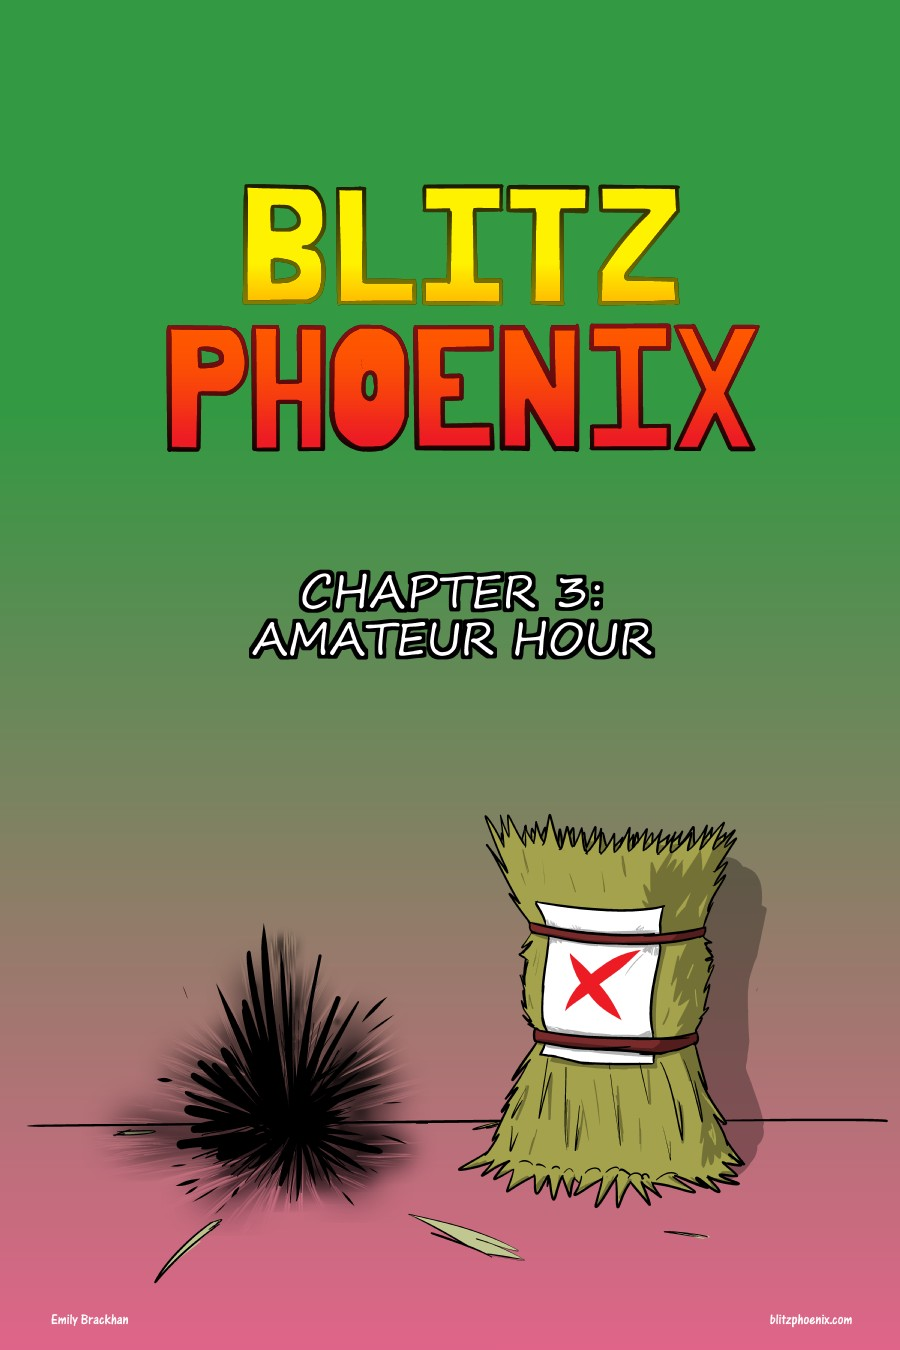 Blitz Phoenix: Chapter 3 - Amateur Hour